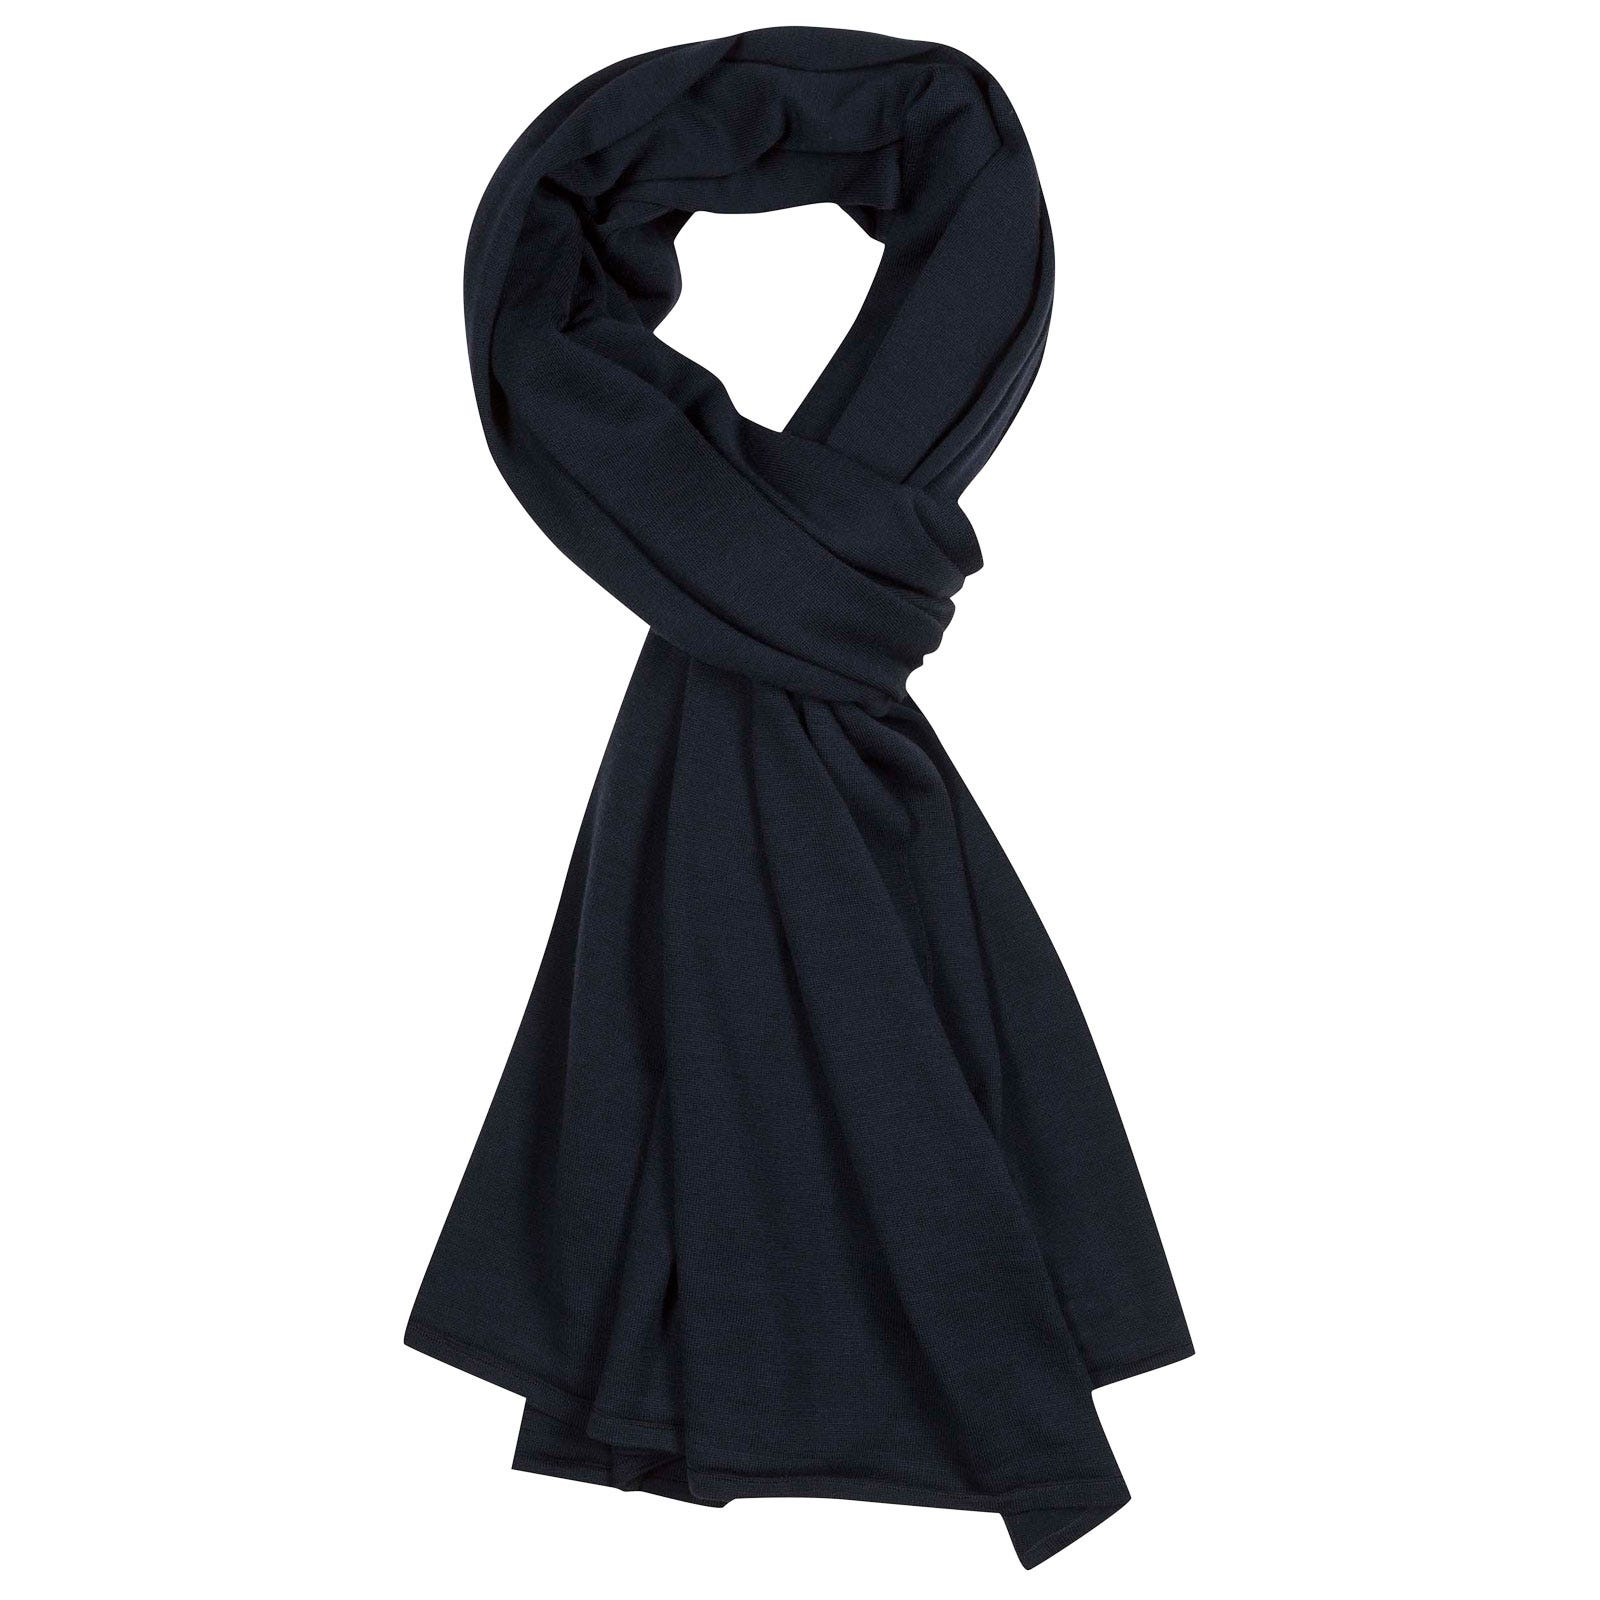 John Smedley wings Merino Wool Shawl in Midnight-ONE